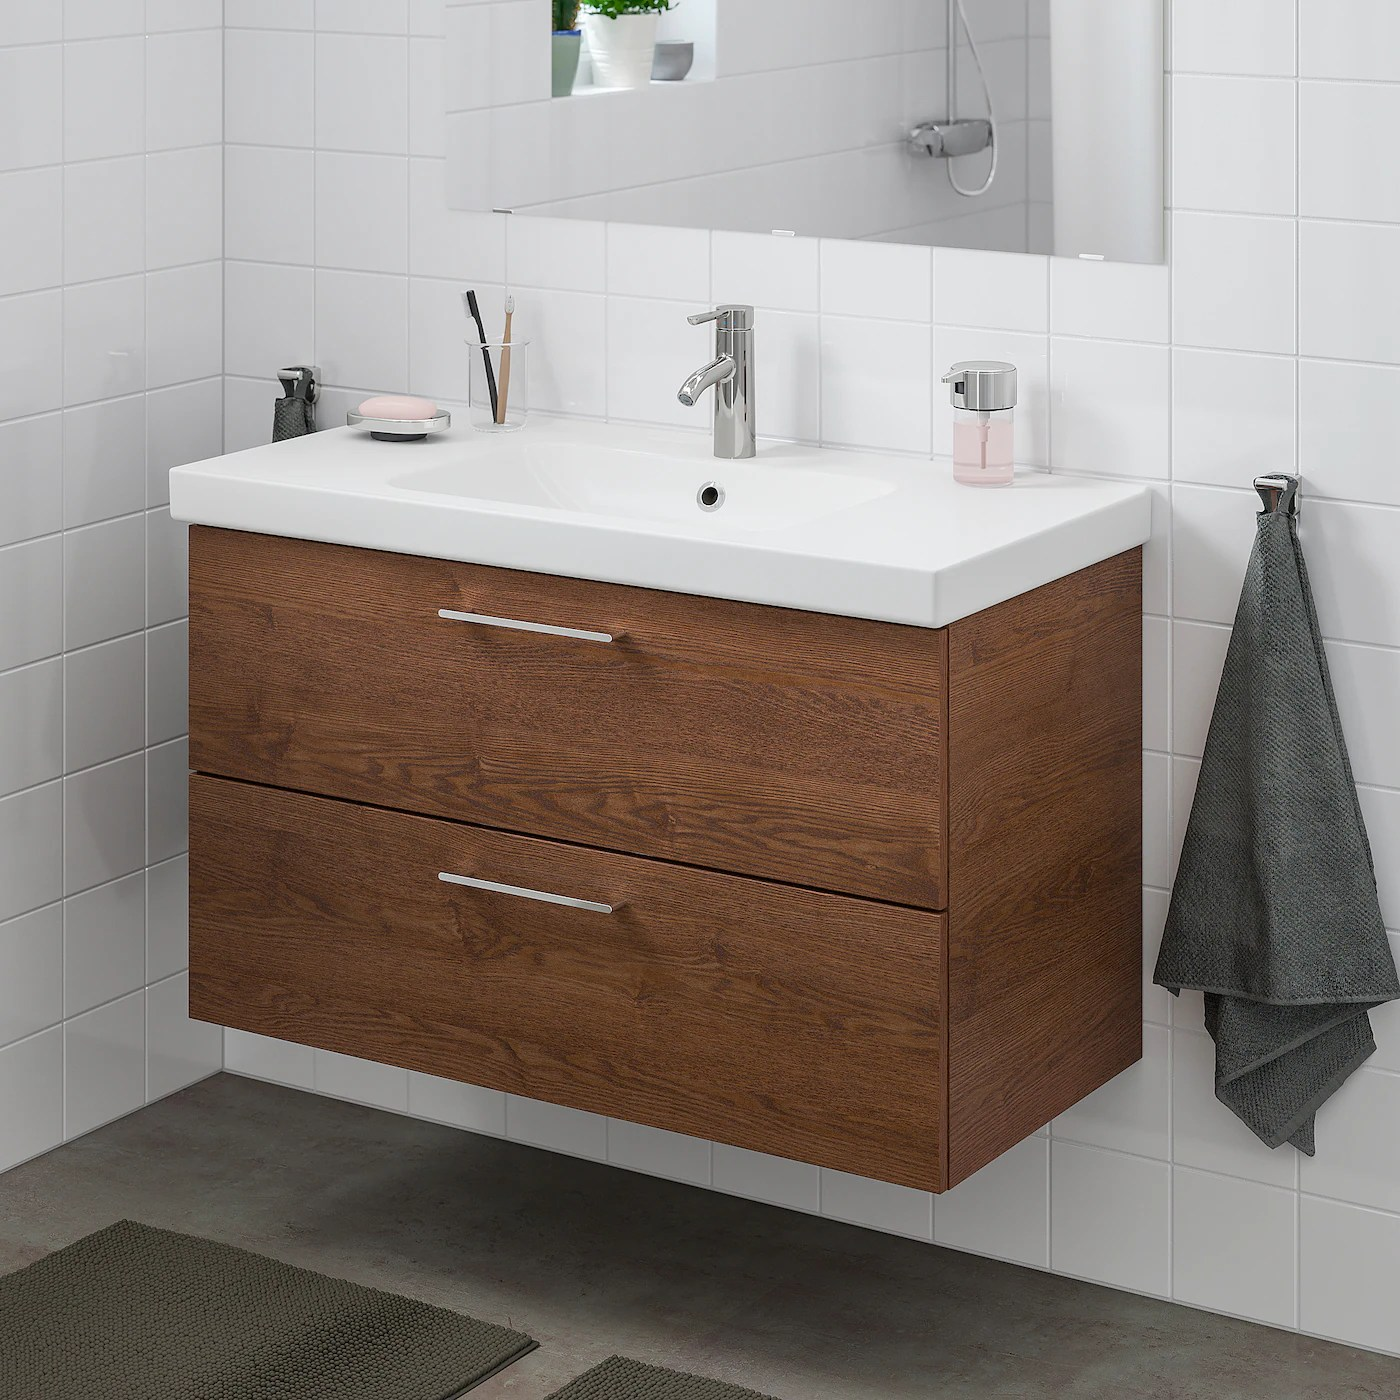 Godmorgon Odensvik Sink Cabinet With 2 Drawers Brown Stained Ash Effect Dalskar Faucet 40 1 2x19 1 4x25 1 4 Order Here Ikea